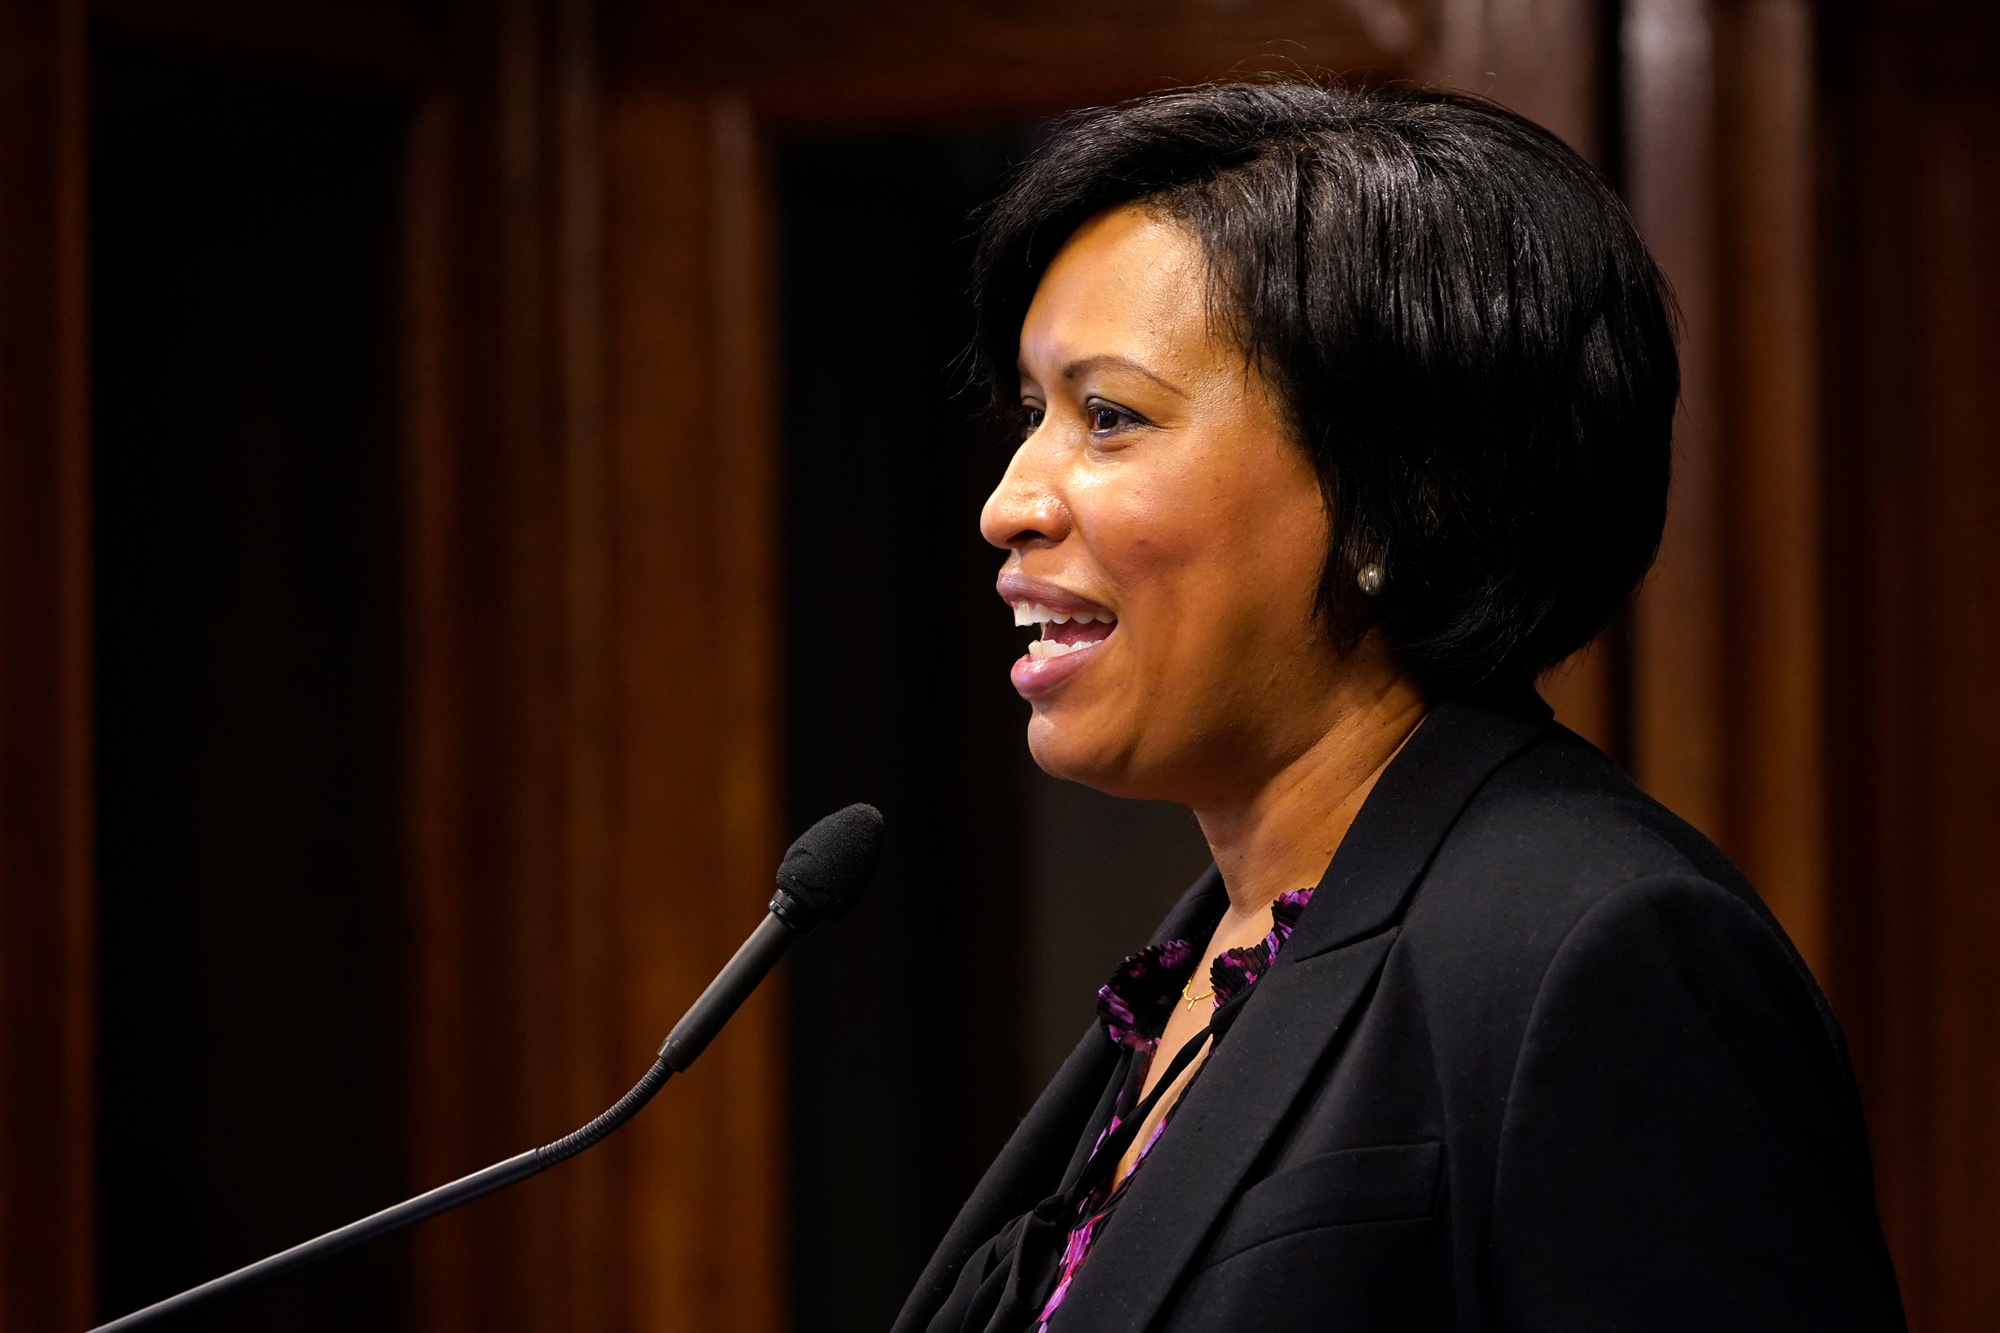 District of Columbia Mayor Muriel Bowser speaks during a news conference in Washington, DC, on November 4.